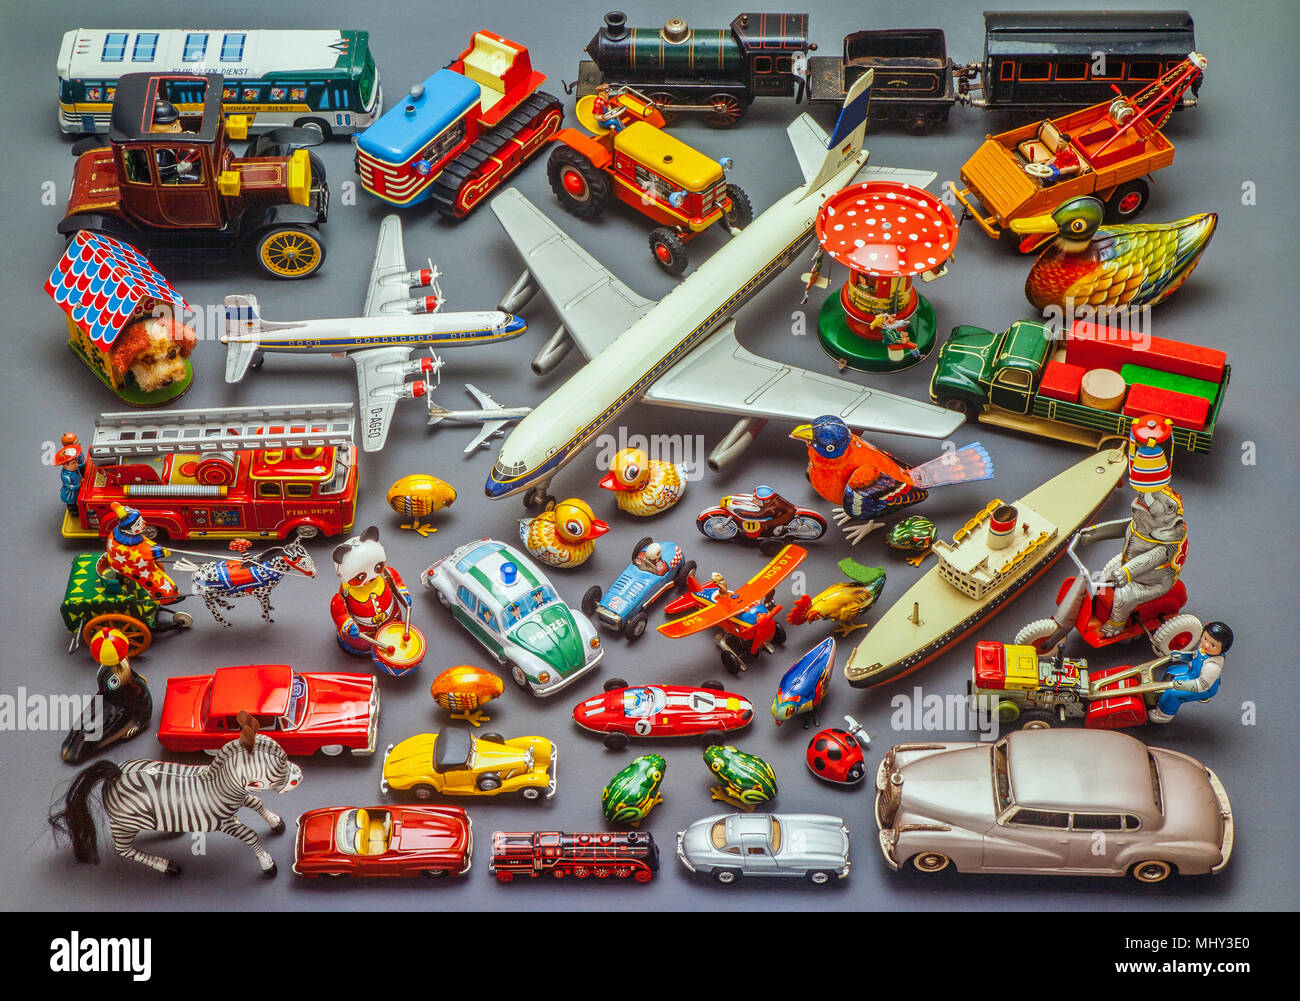 collection of historical metal toys - Stock Image